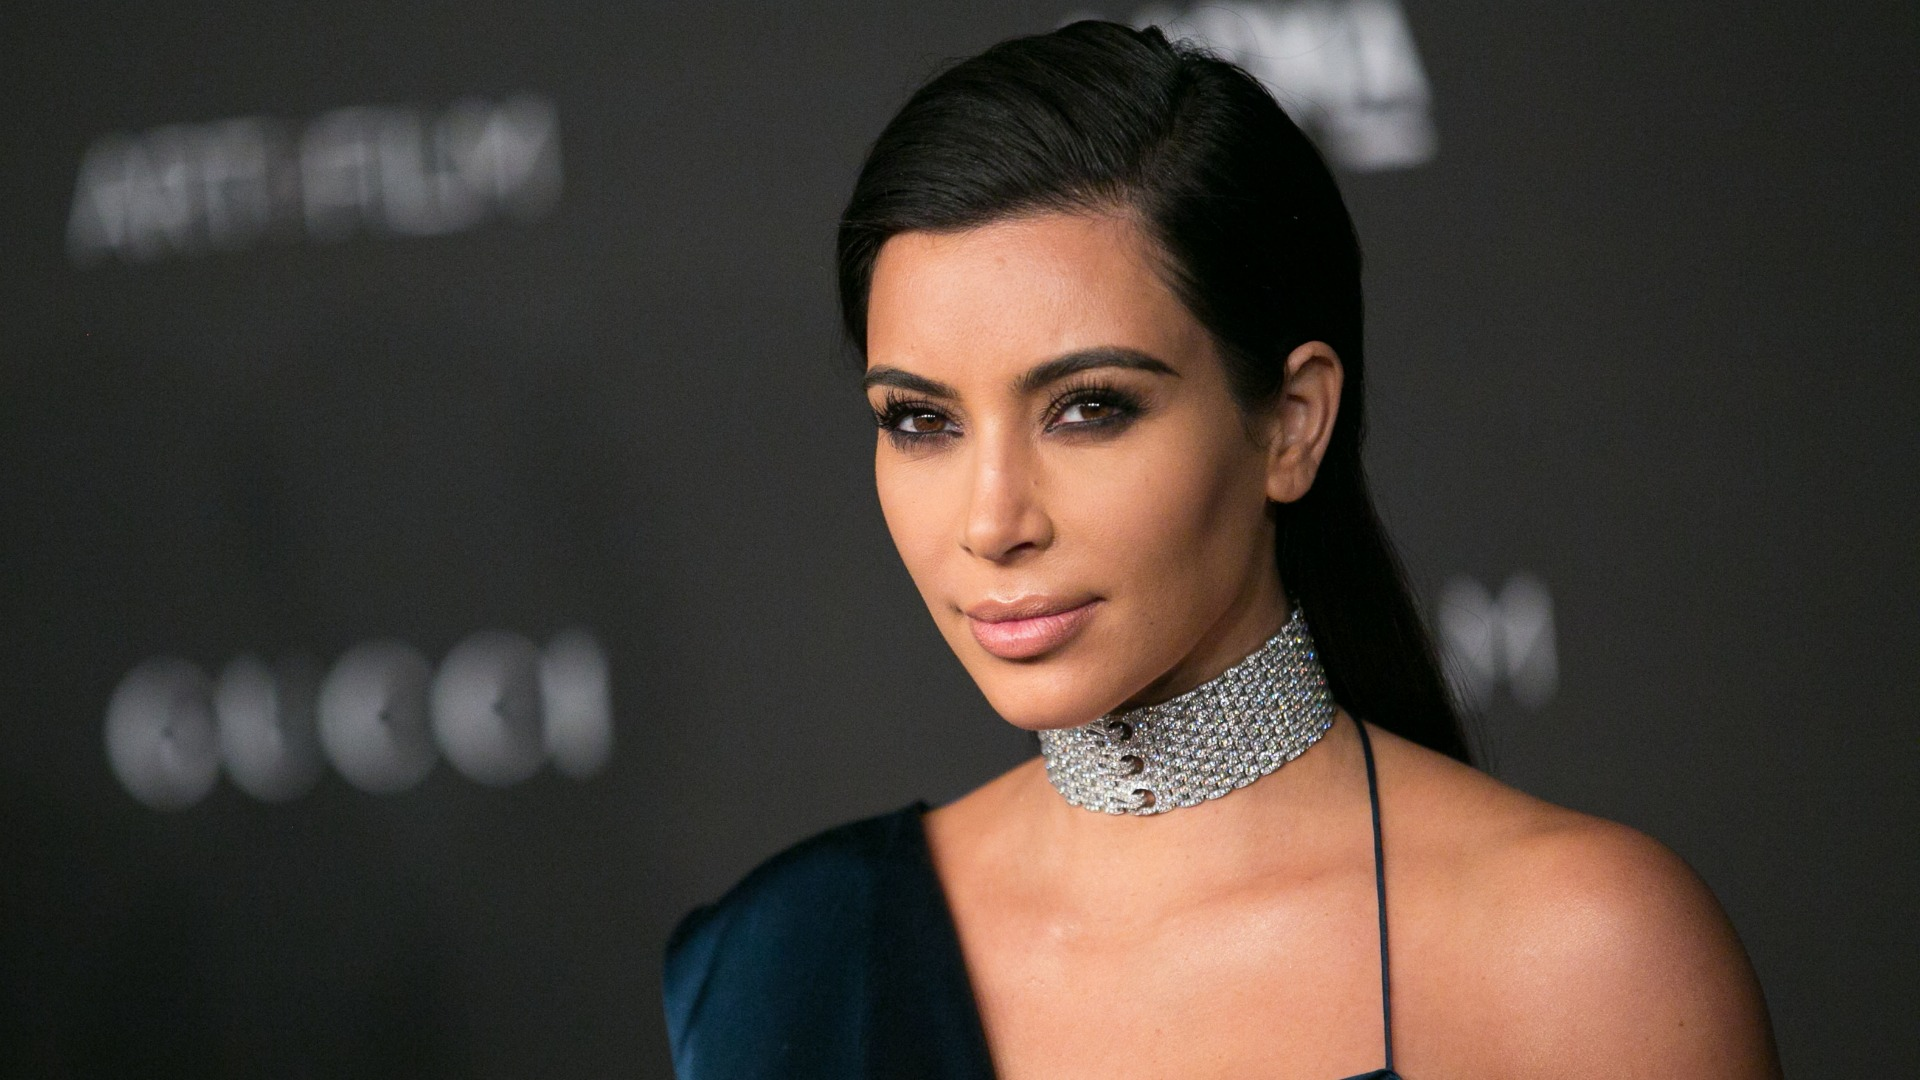 Kim kardashian shows her rear on the cover of paper magazine